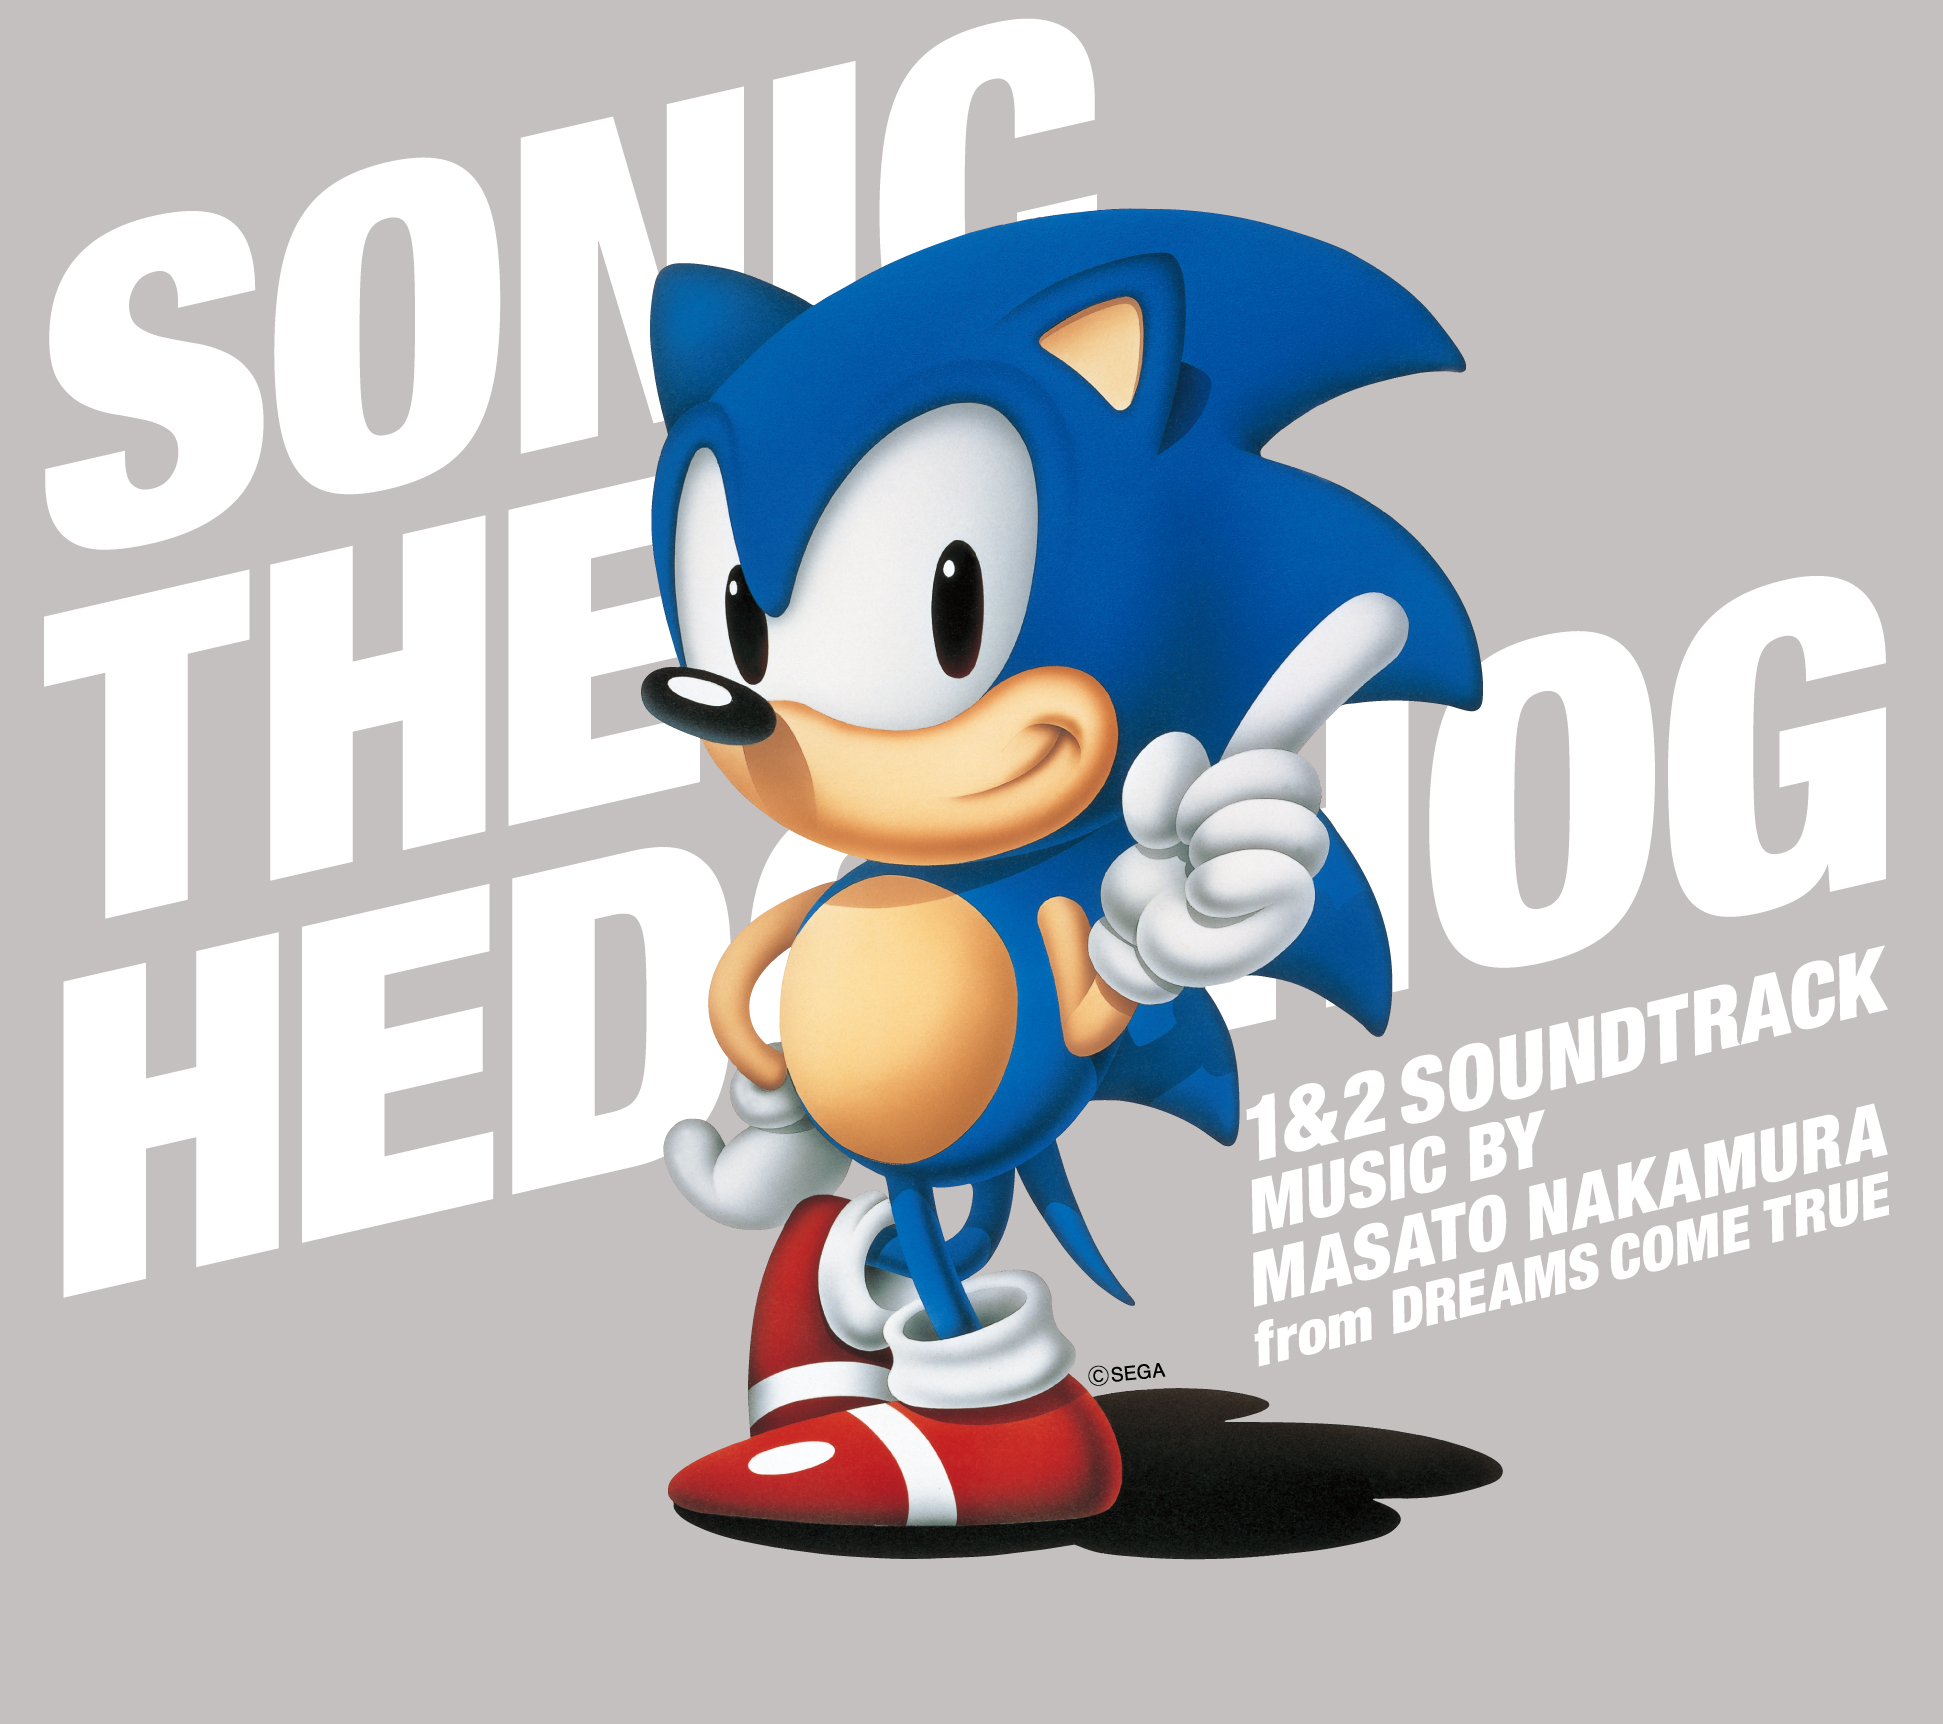 Sonic The Hedgehog 1 2 Soundtrack Sonic News Network Fandom